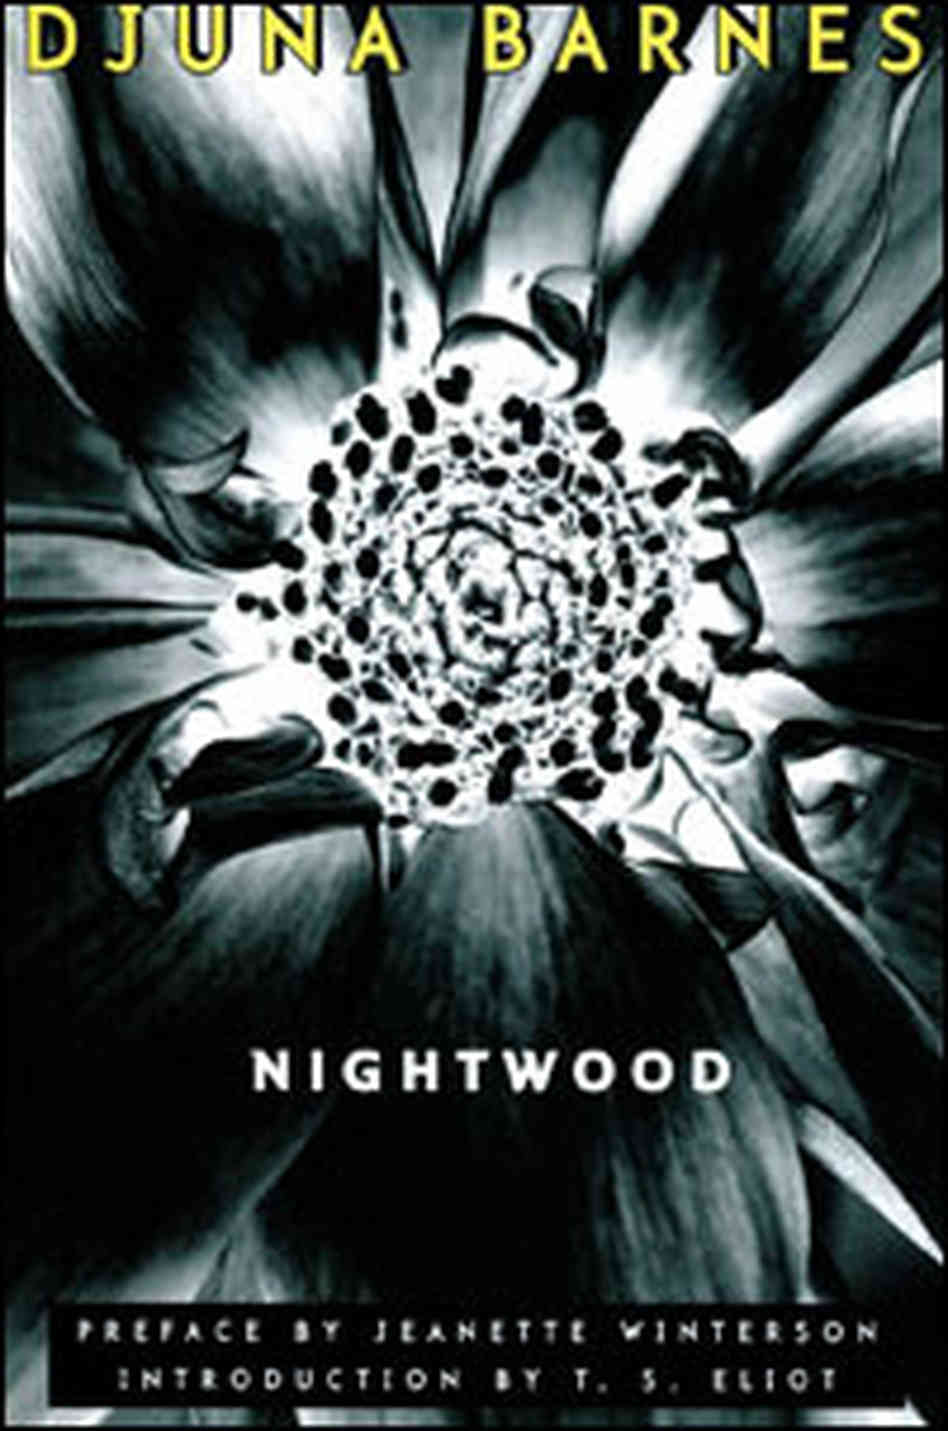 Nightwood